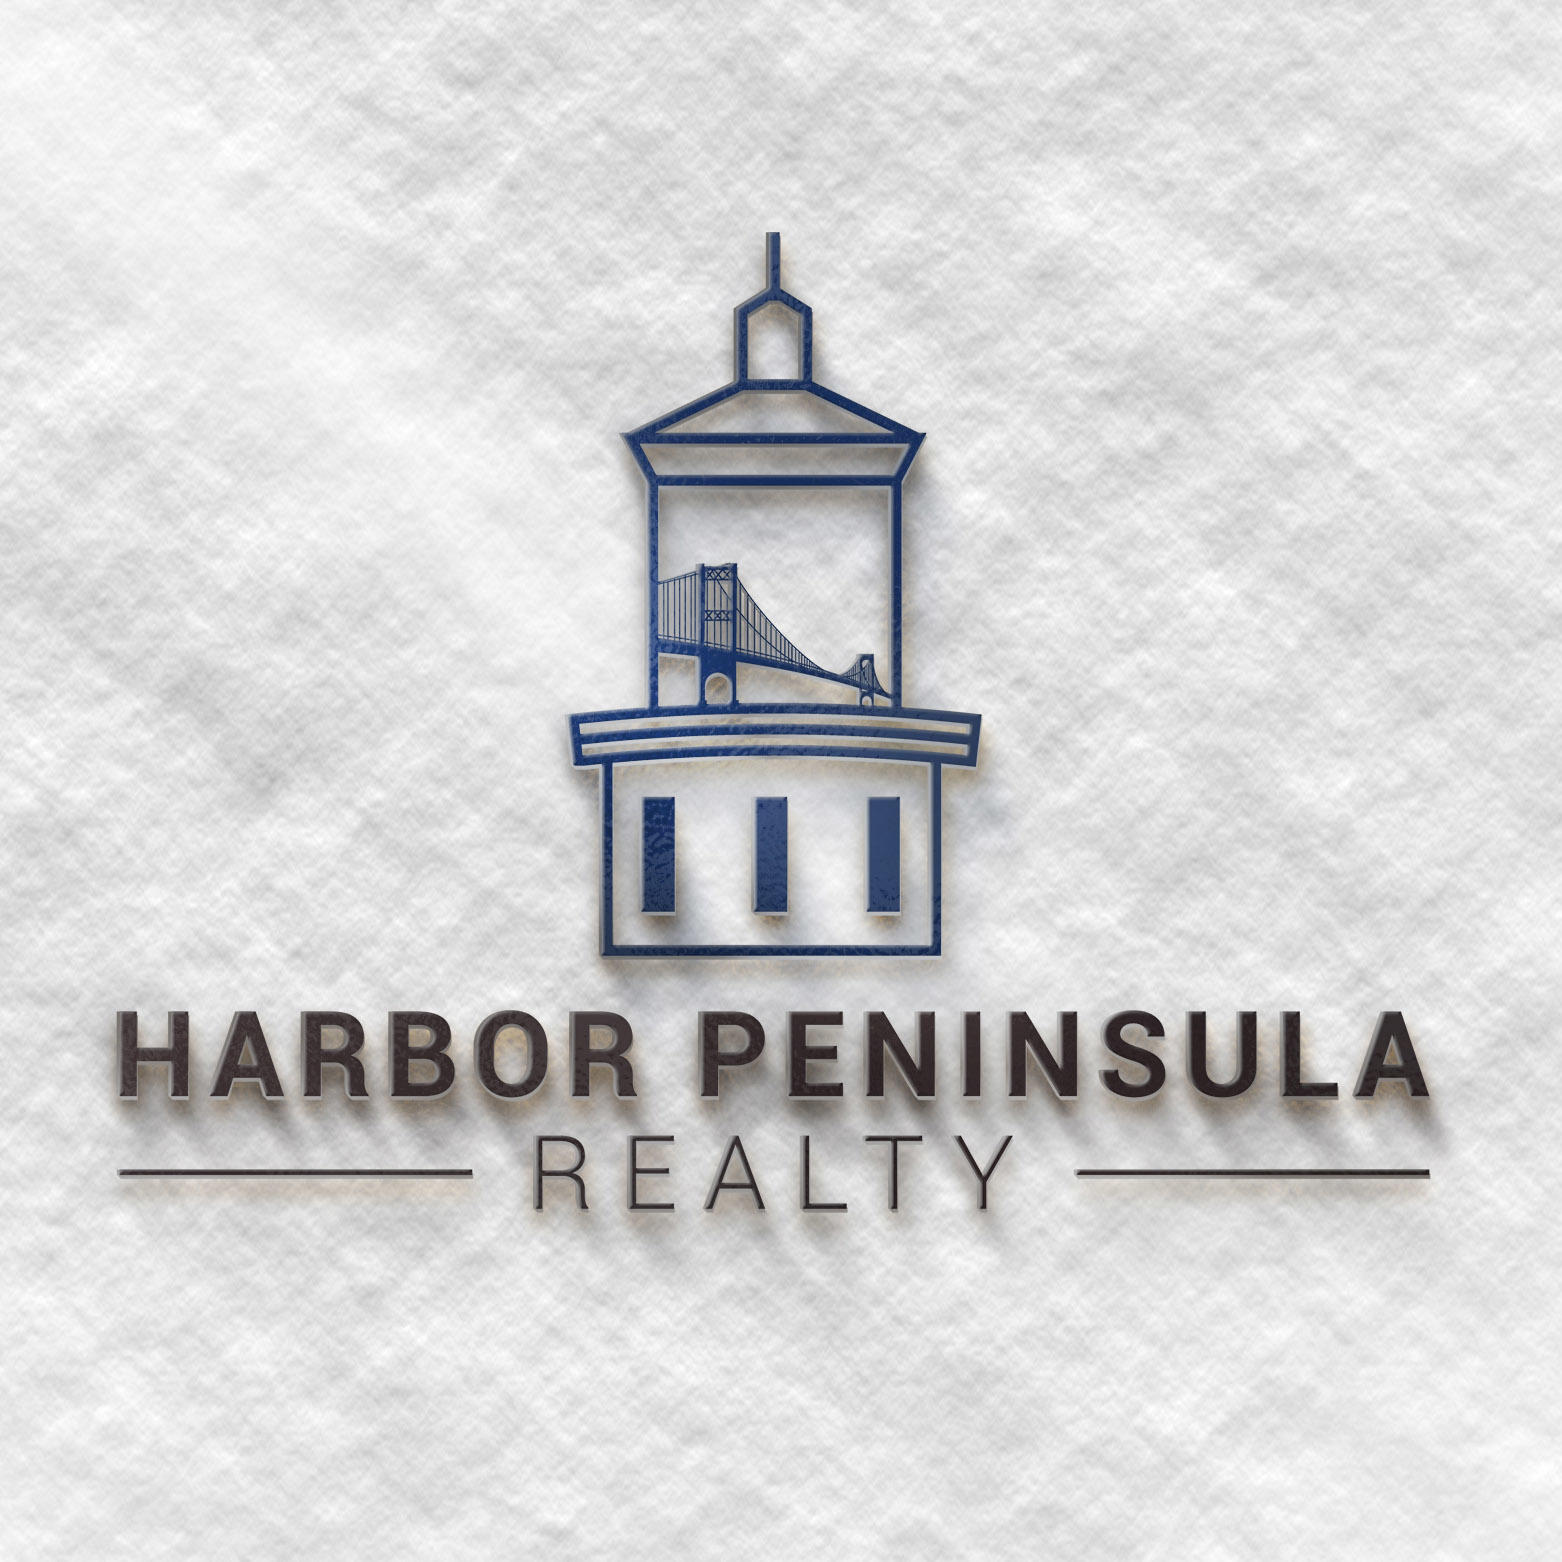 Harbor Peninsula Realty